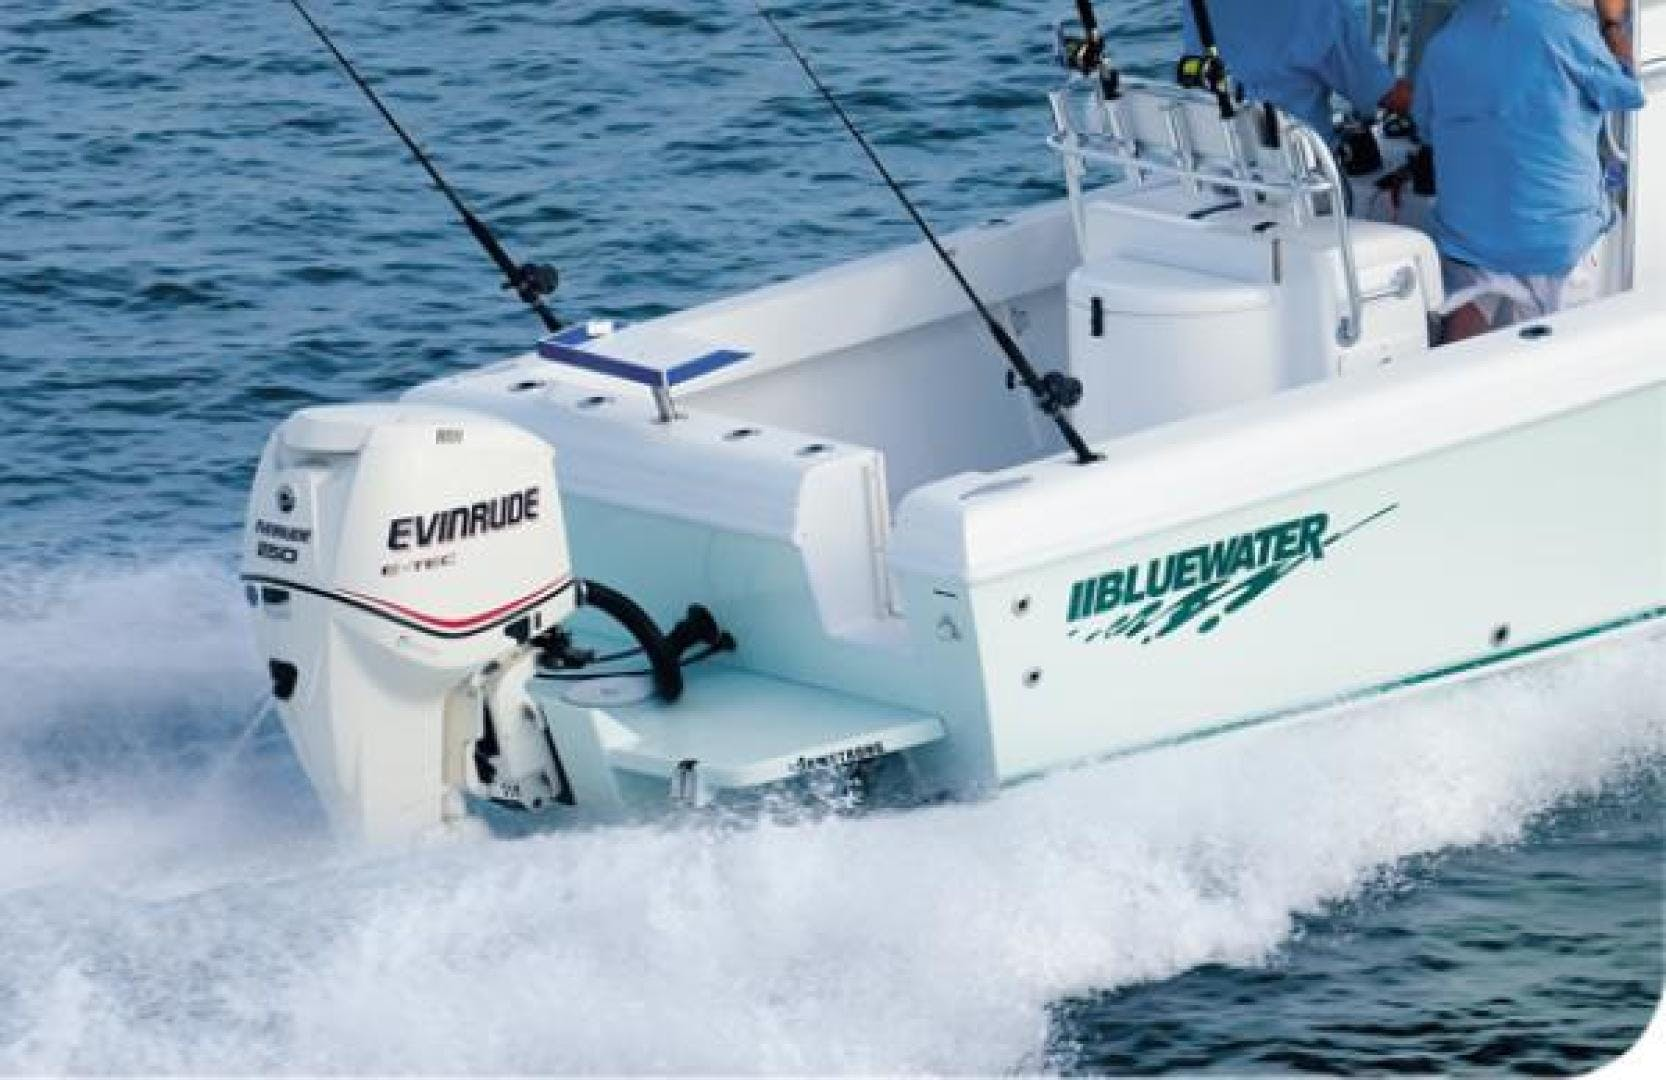 2021 Bluewater Sportfishing 22' 23t Bluewater Sportfishing 23t | Picture 7 of 7